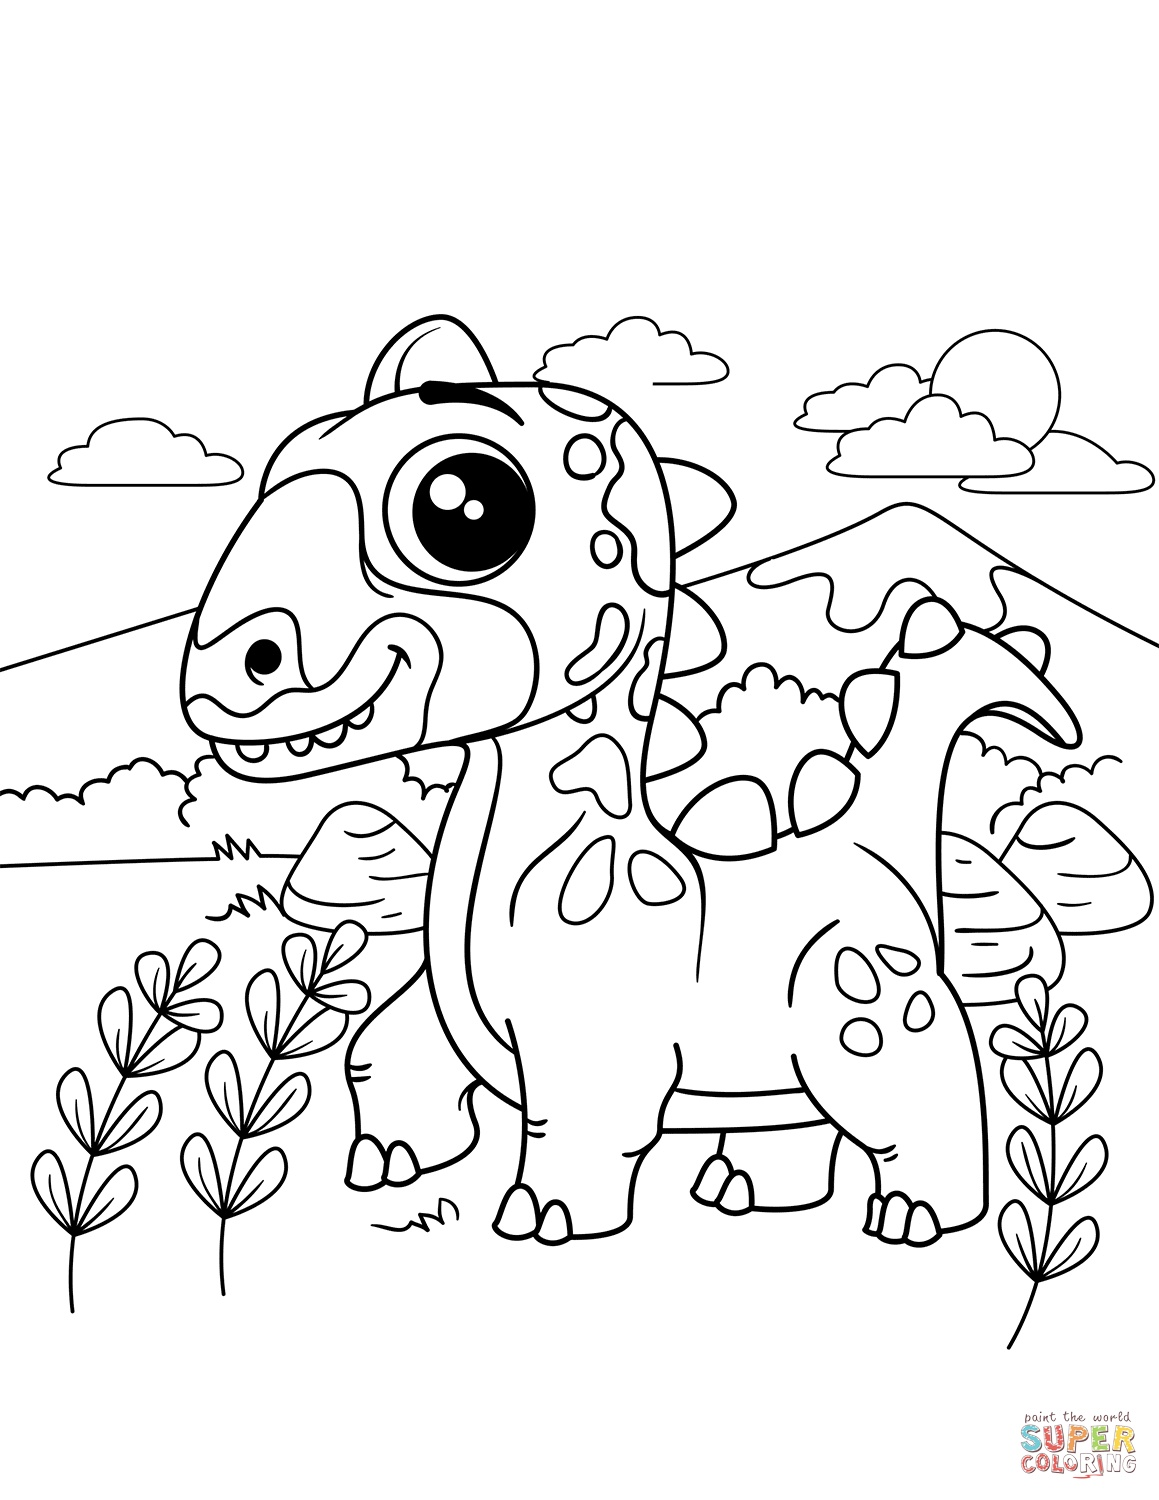 dinosaur coloring easy simple dinosaur coloring pages coloring pages to dinosaur easy coloring 1 1